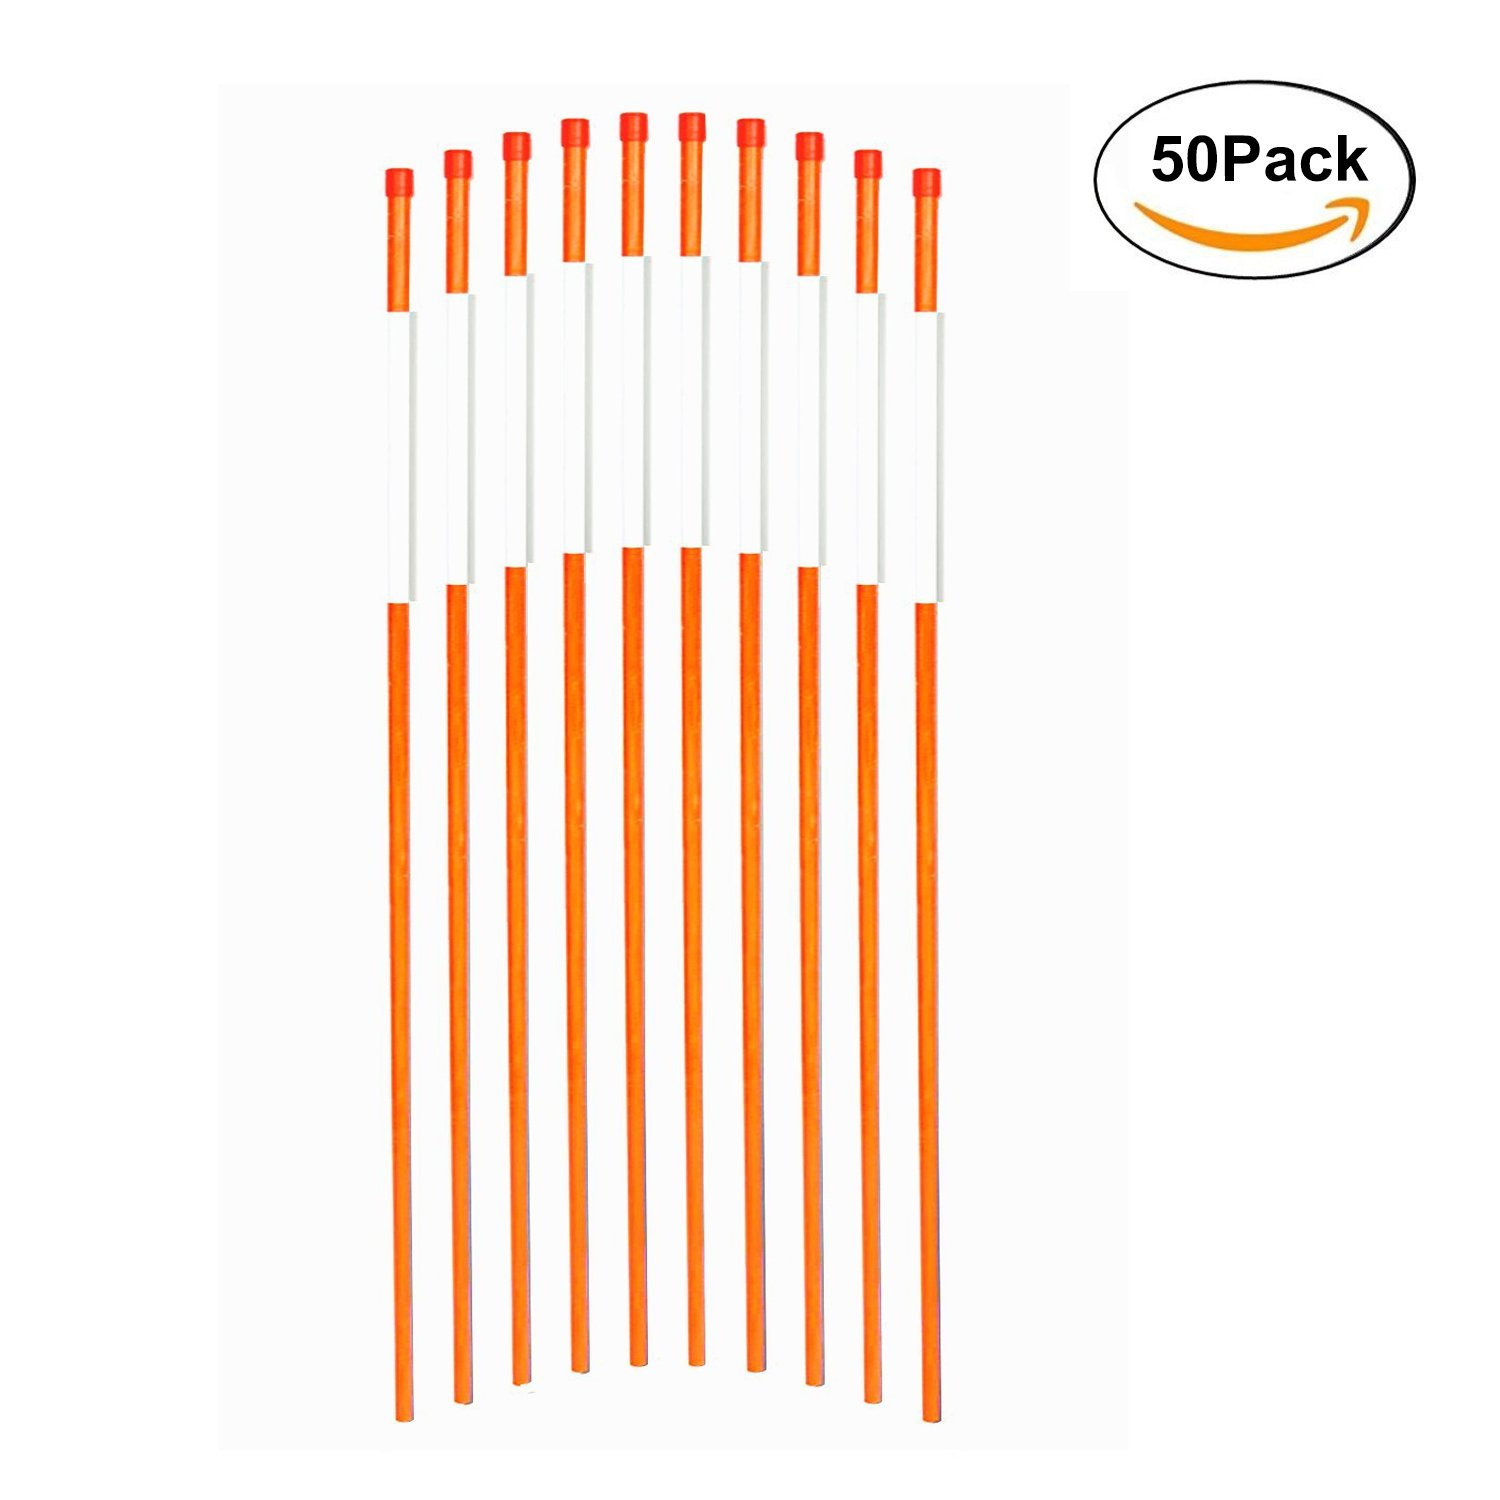 FiberMarker Hollow Reflective Driveway Markers 72-Inch 50-Pack Orange 5/16-Inch Dia Driveway Poles for Easy Visibility at Night by FiberMarker